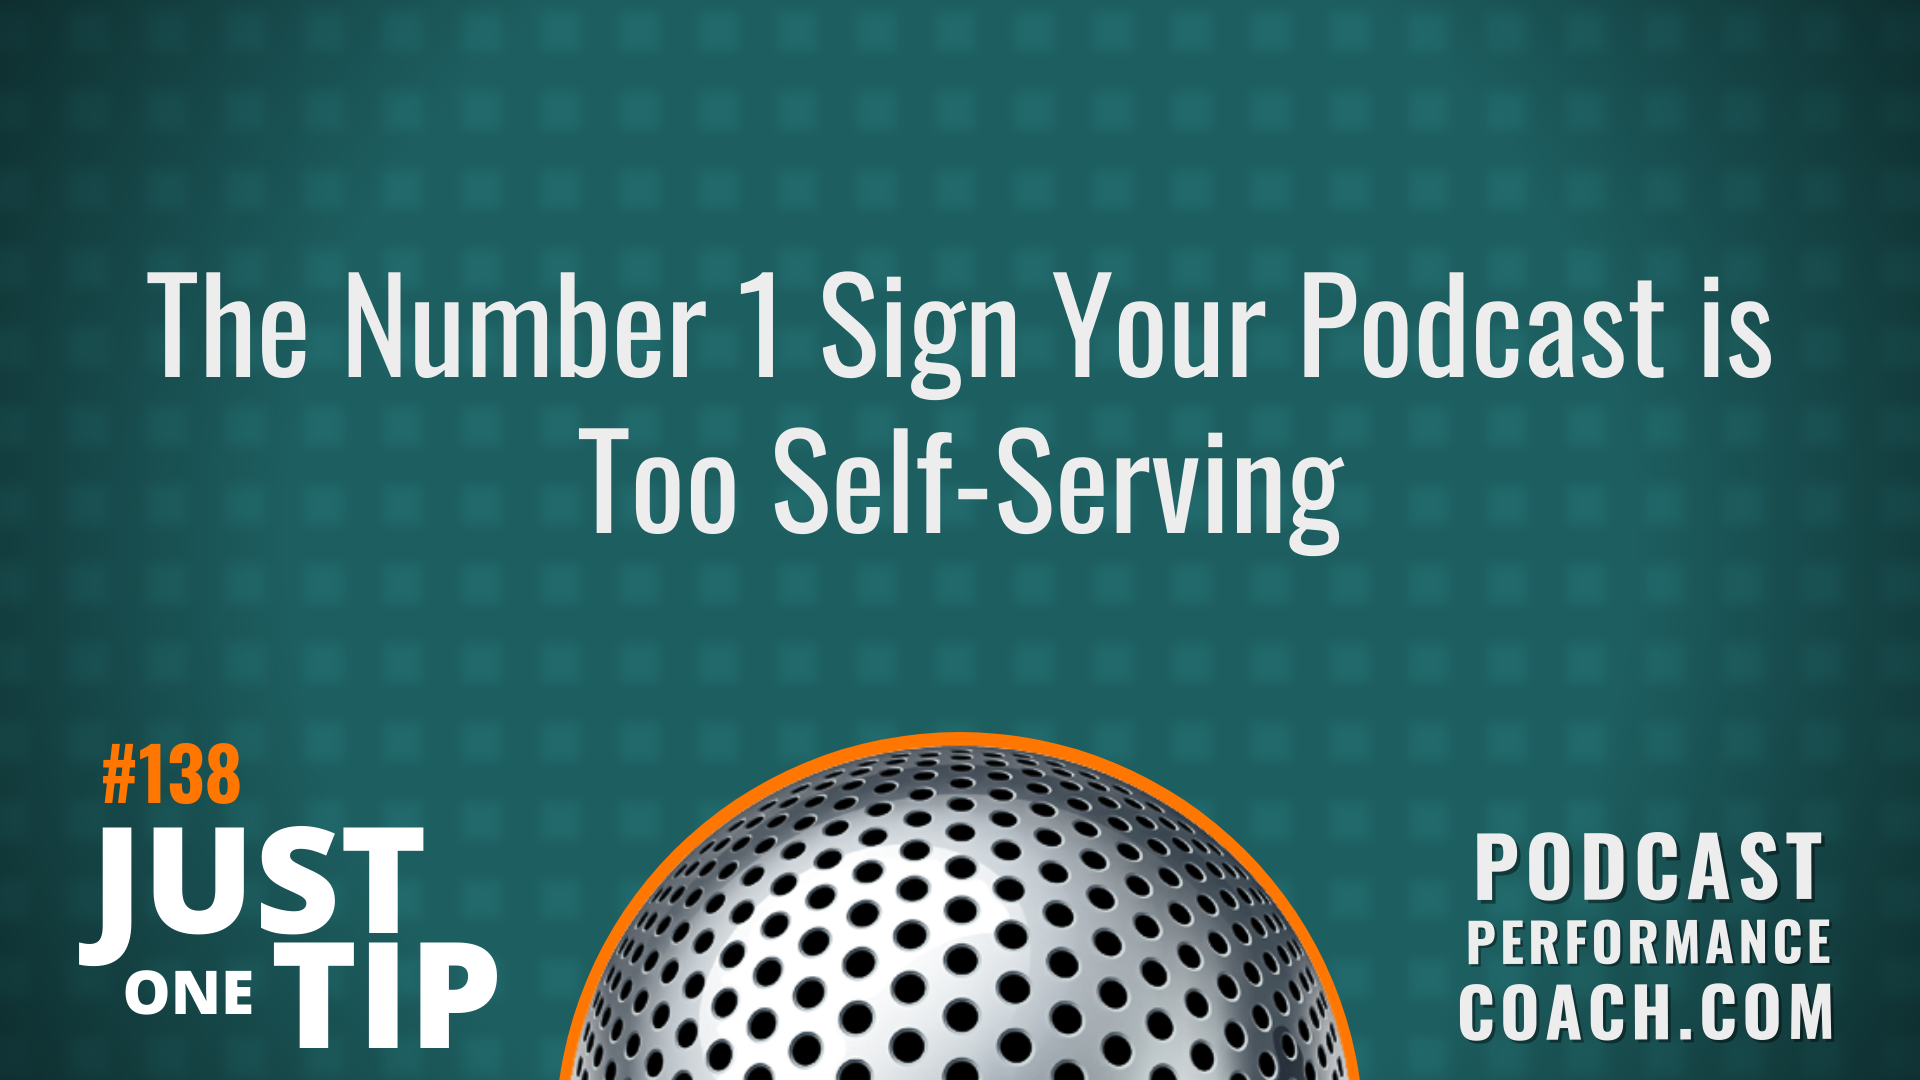 138 The Number 1 Sign Your Podcast is Too Self-Serving